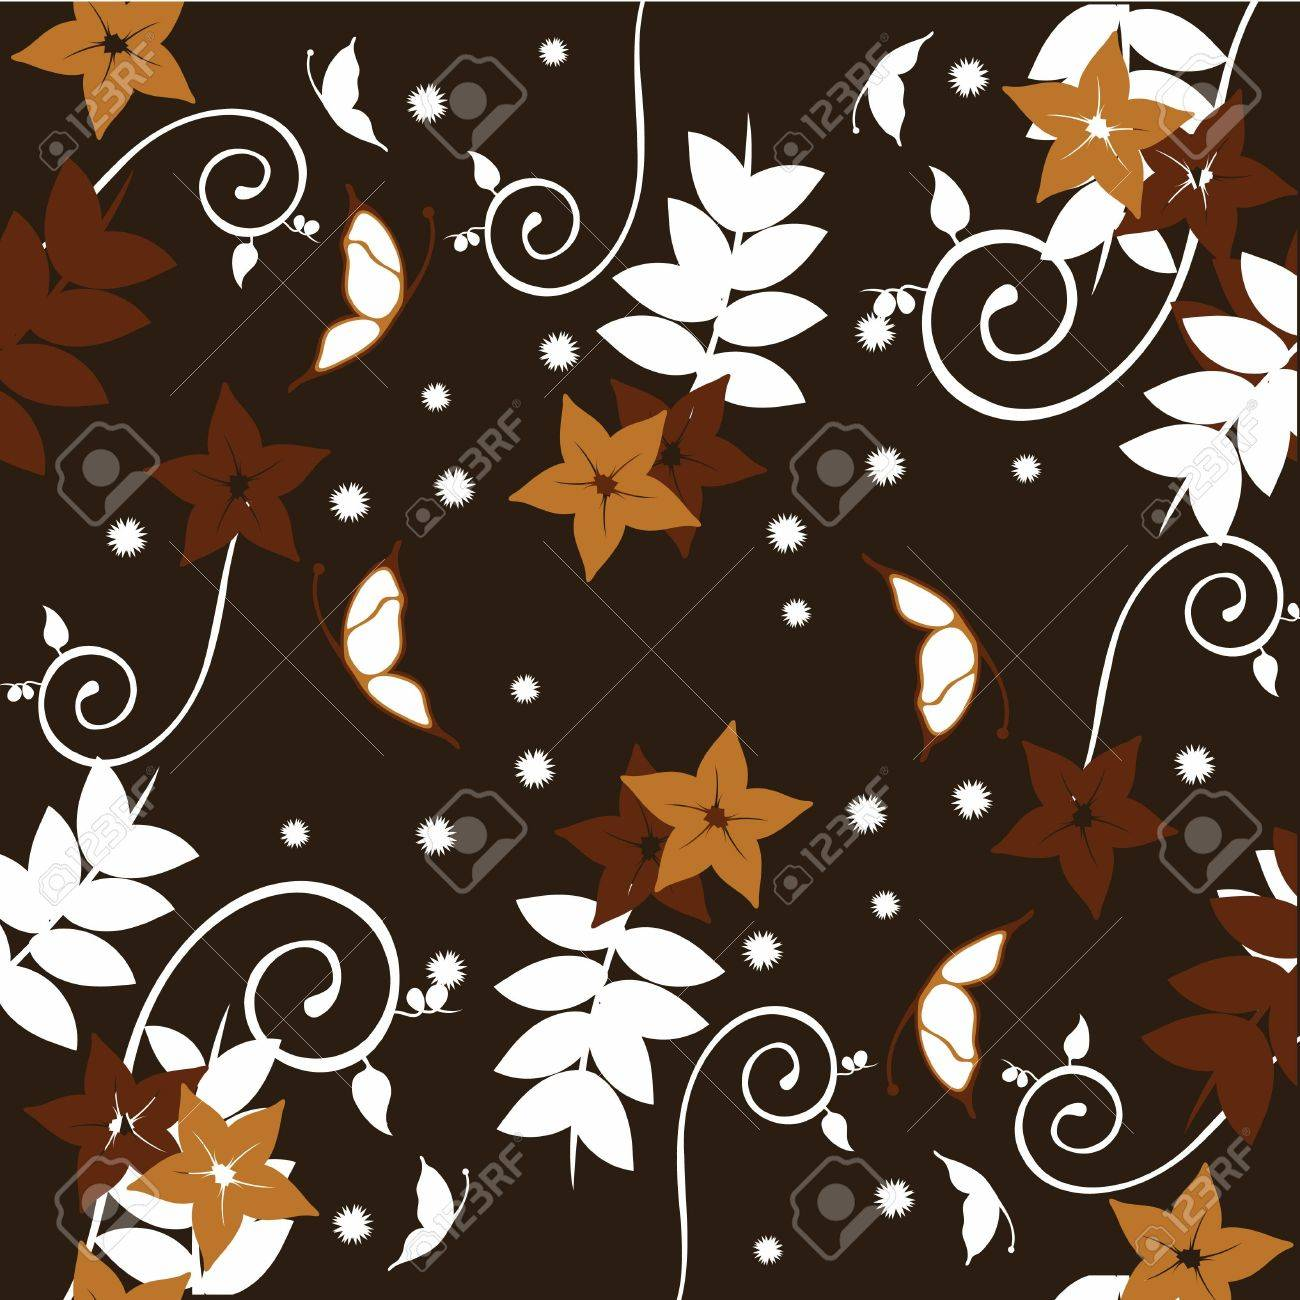 floral patterns for wallpaper, curtains, present paper and others Stock Photo - 13229597